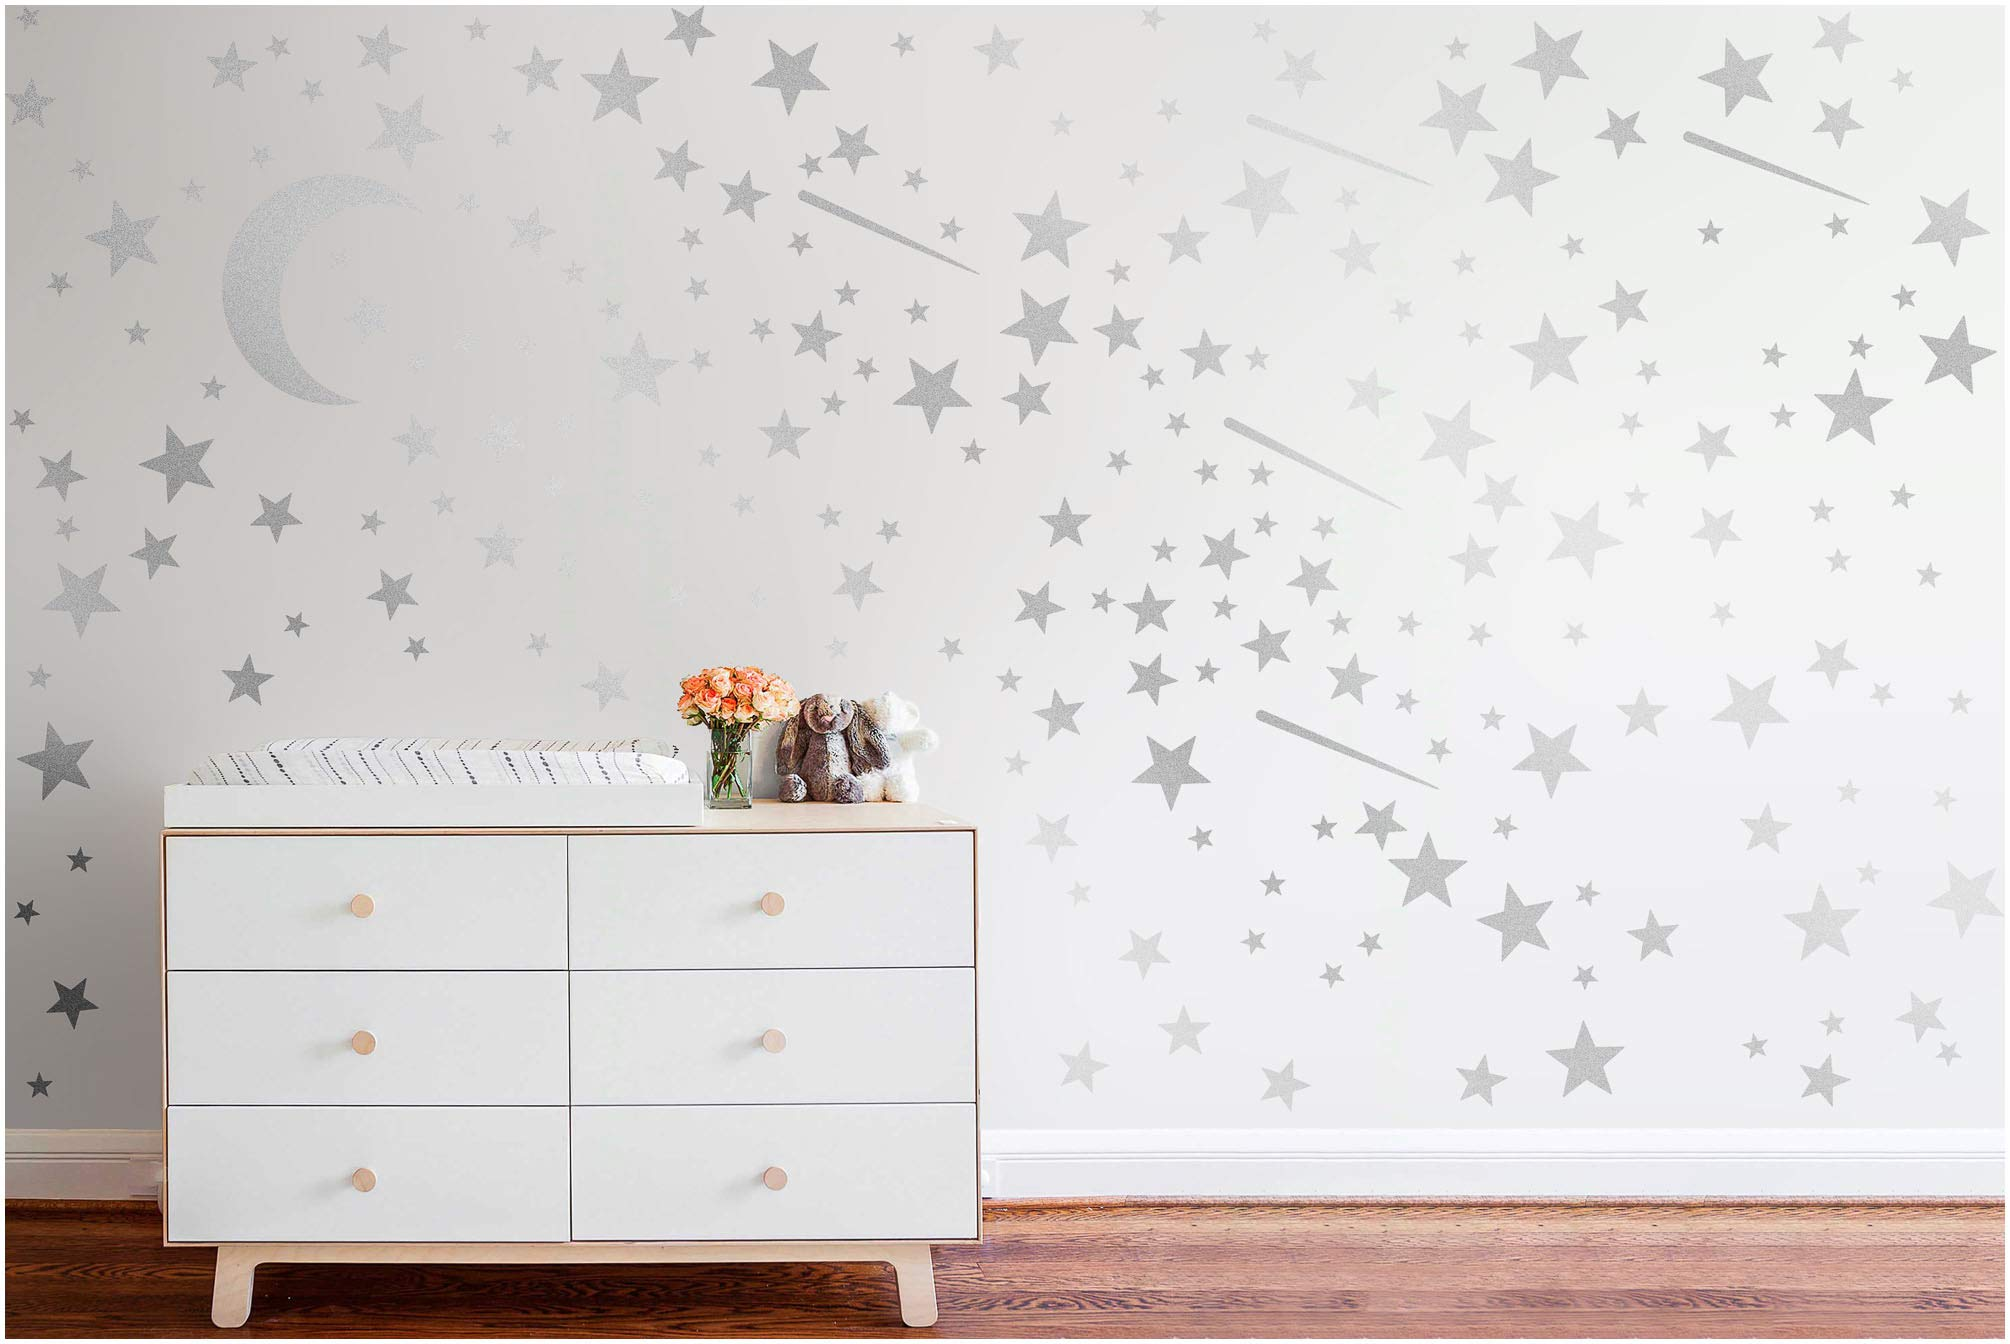 PapaKit Twinkle Little Stars & Moon Wall Decal (Brilliant Silver, 200 Assorted Stickers) Baby Nursery Child Kid Teen Girl Boy Room Home Decor | Creative Art Design Pattern | Safe Removable Adhesive